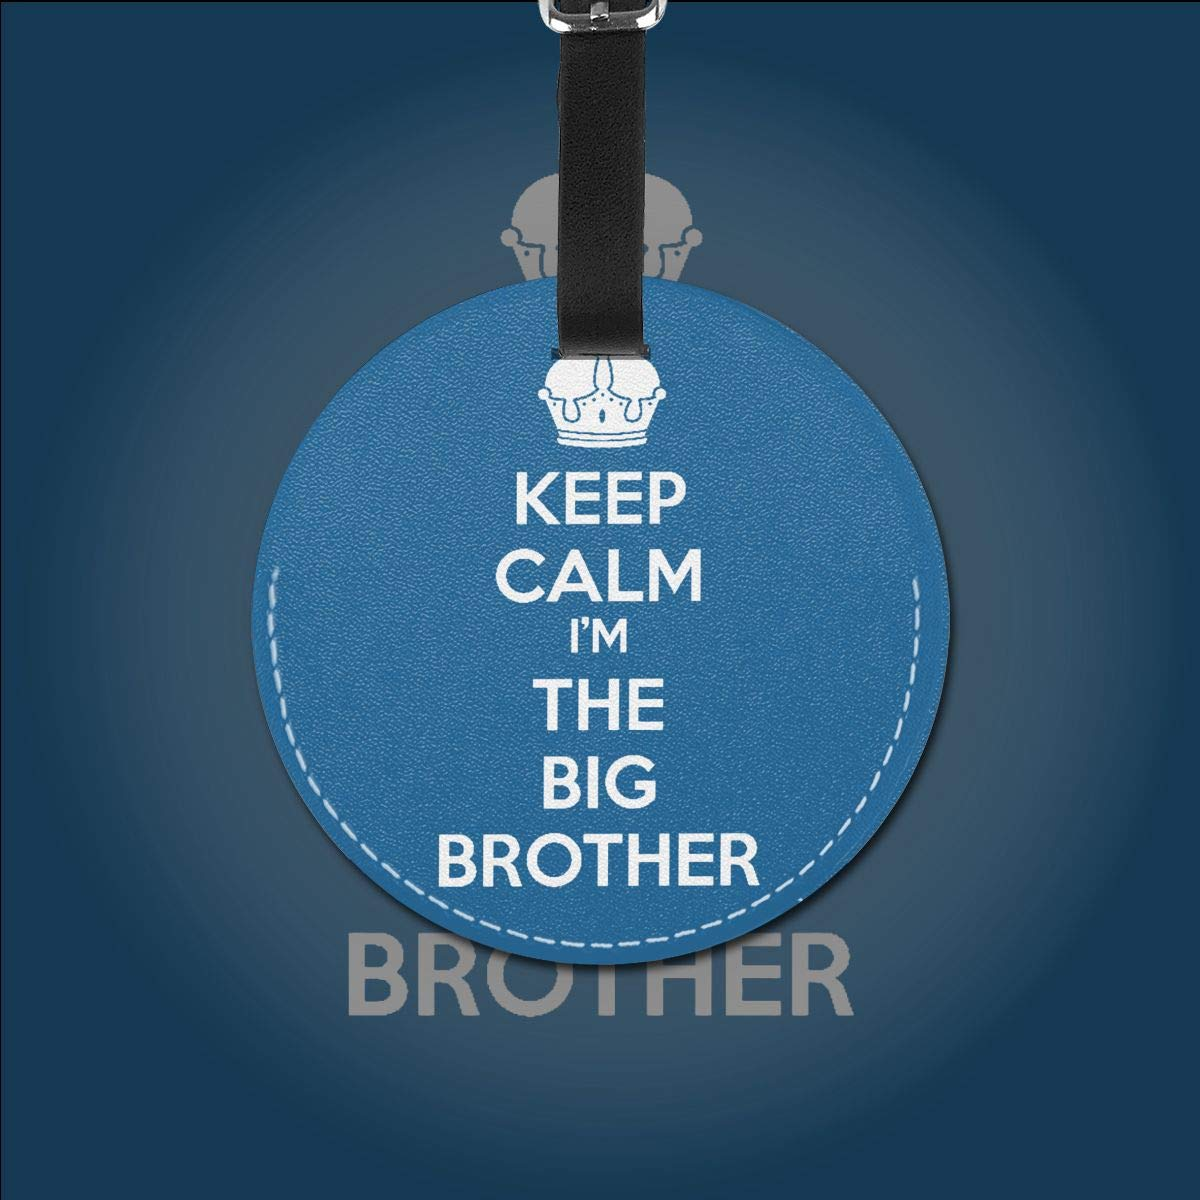 Keep Calm Im The Big Brother Pu Leather Double Sides Print Round Luggage Tag Mutilple Packs 1pcs,2pcs,4pcs